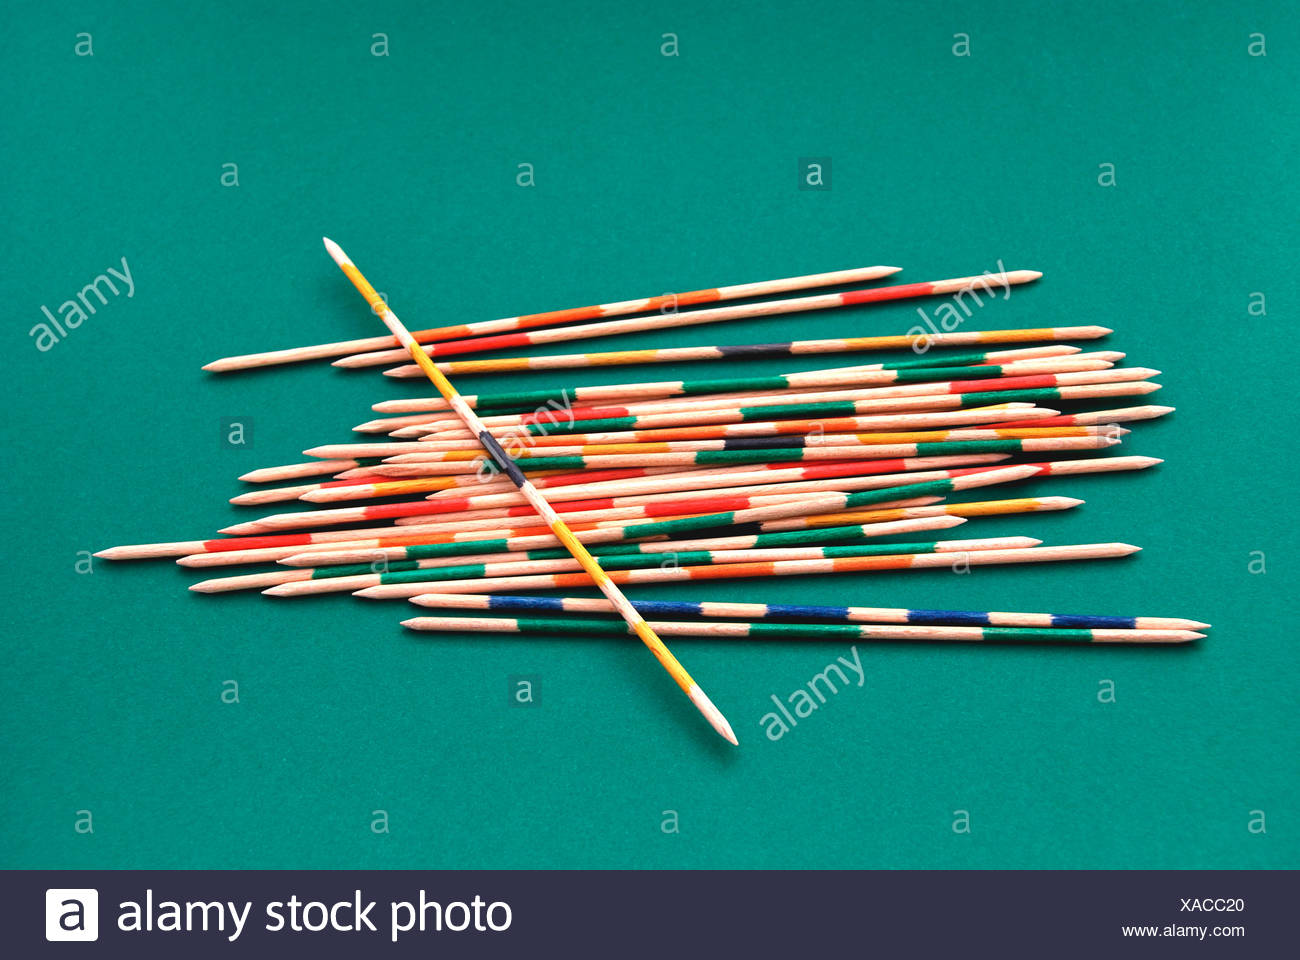 Mikado sticks, game of skill, symbolic image for dexterity, confusion, disorder - Stock Image